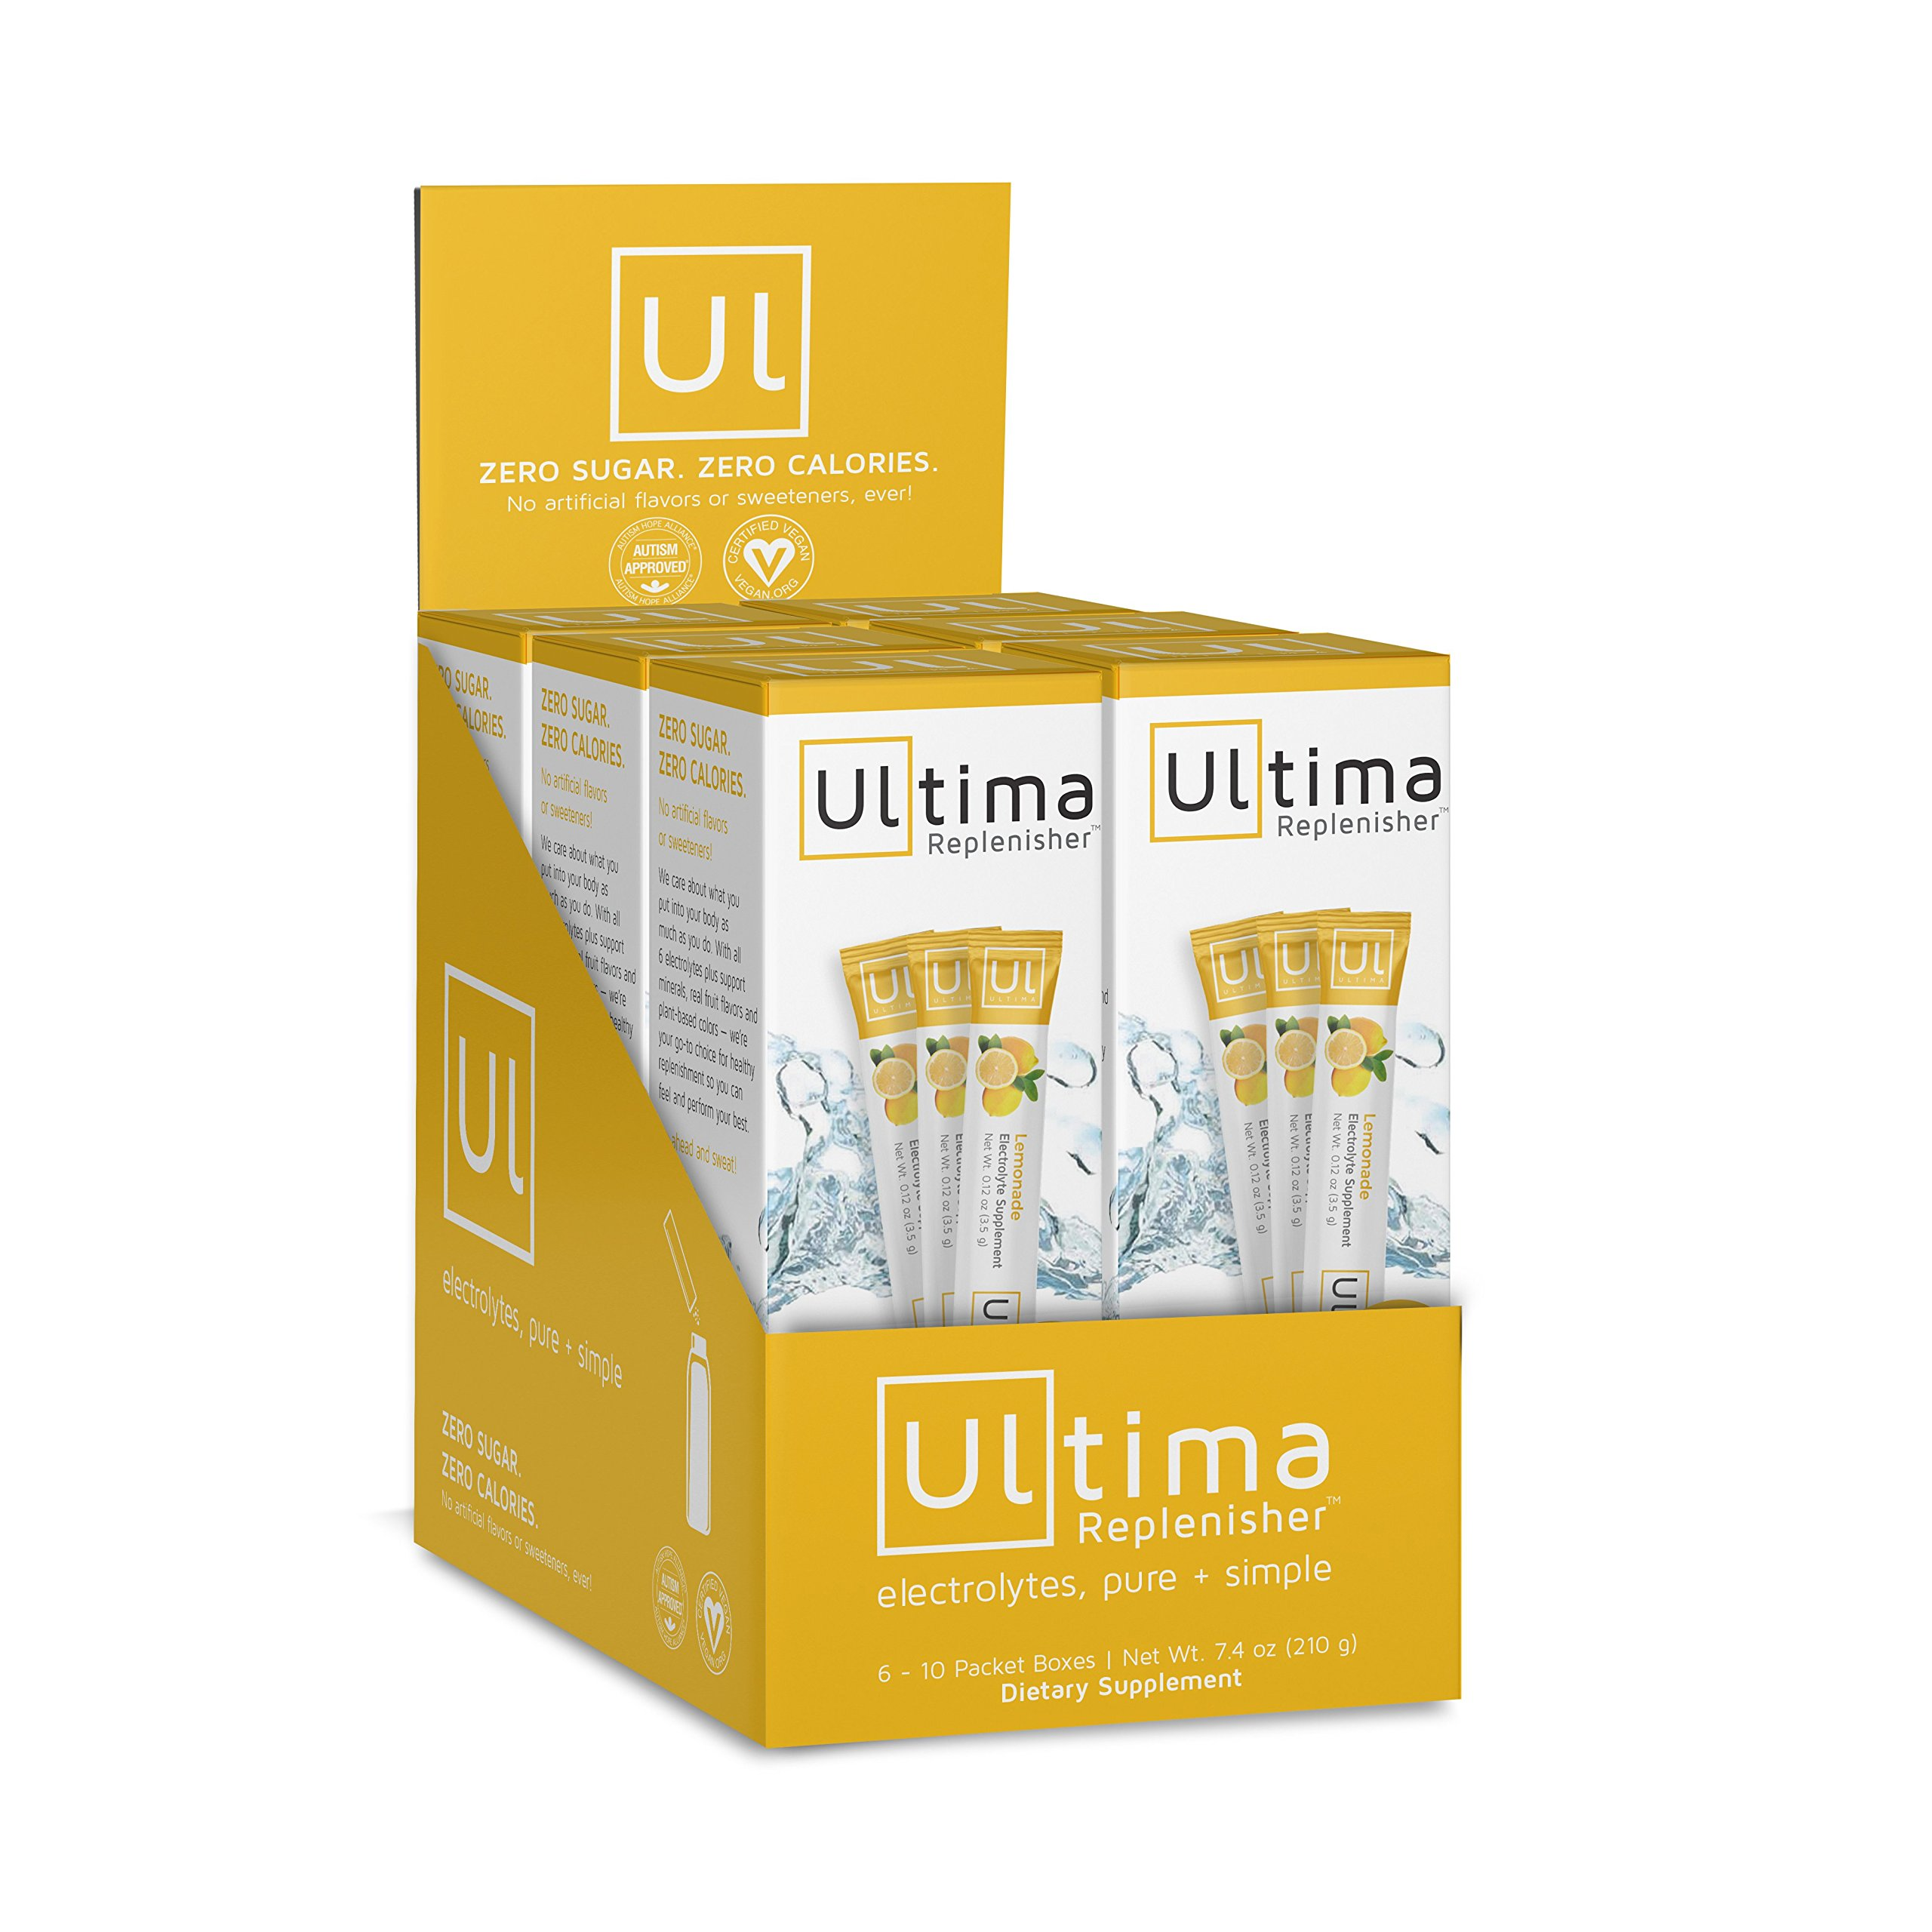 Ultima Hydrating Electrolyte Powder, Lemonade, 60 Count Stickpacks by Ultima Replenisher (Image #1)